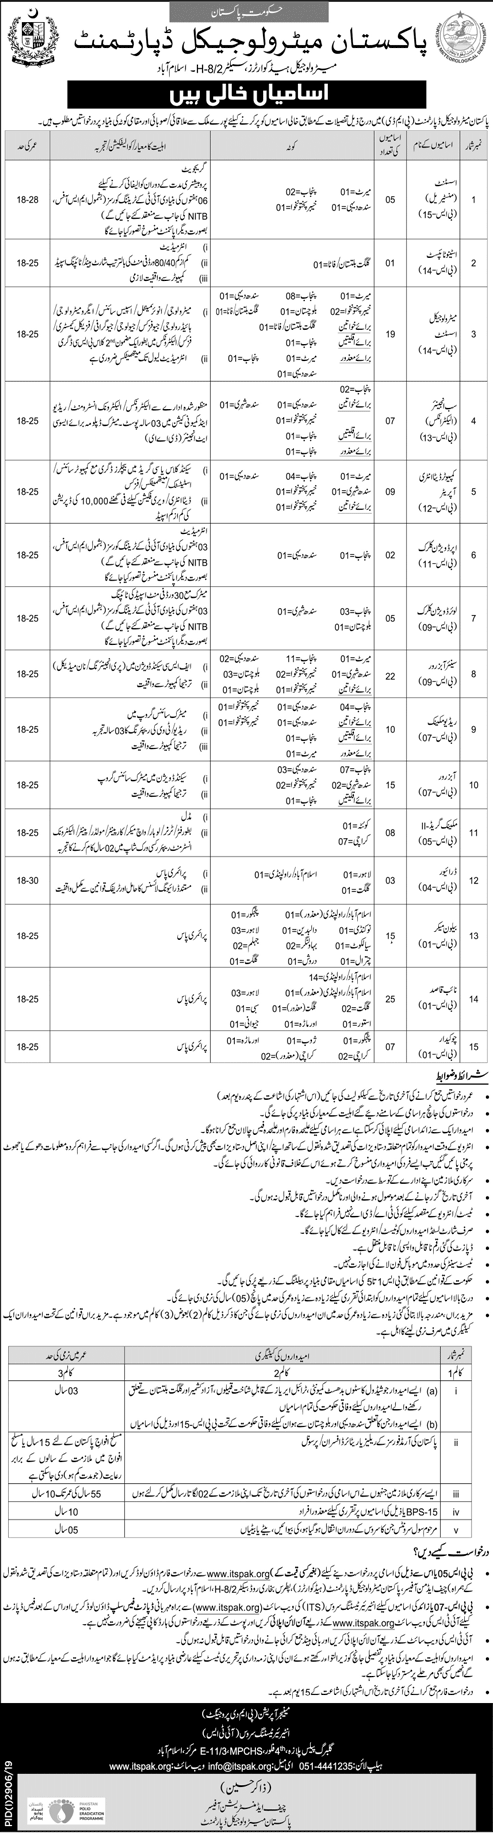 Pakistan Meteorological Department Vacancies